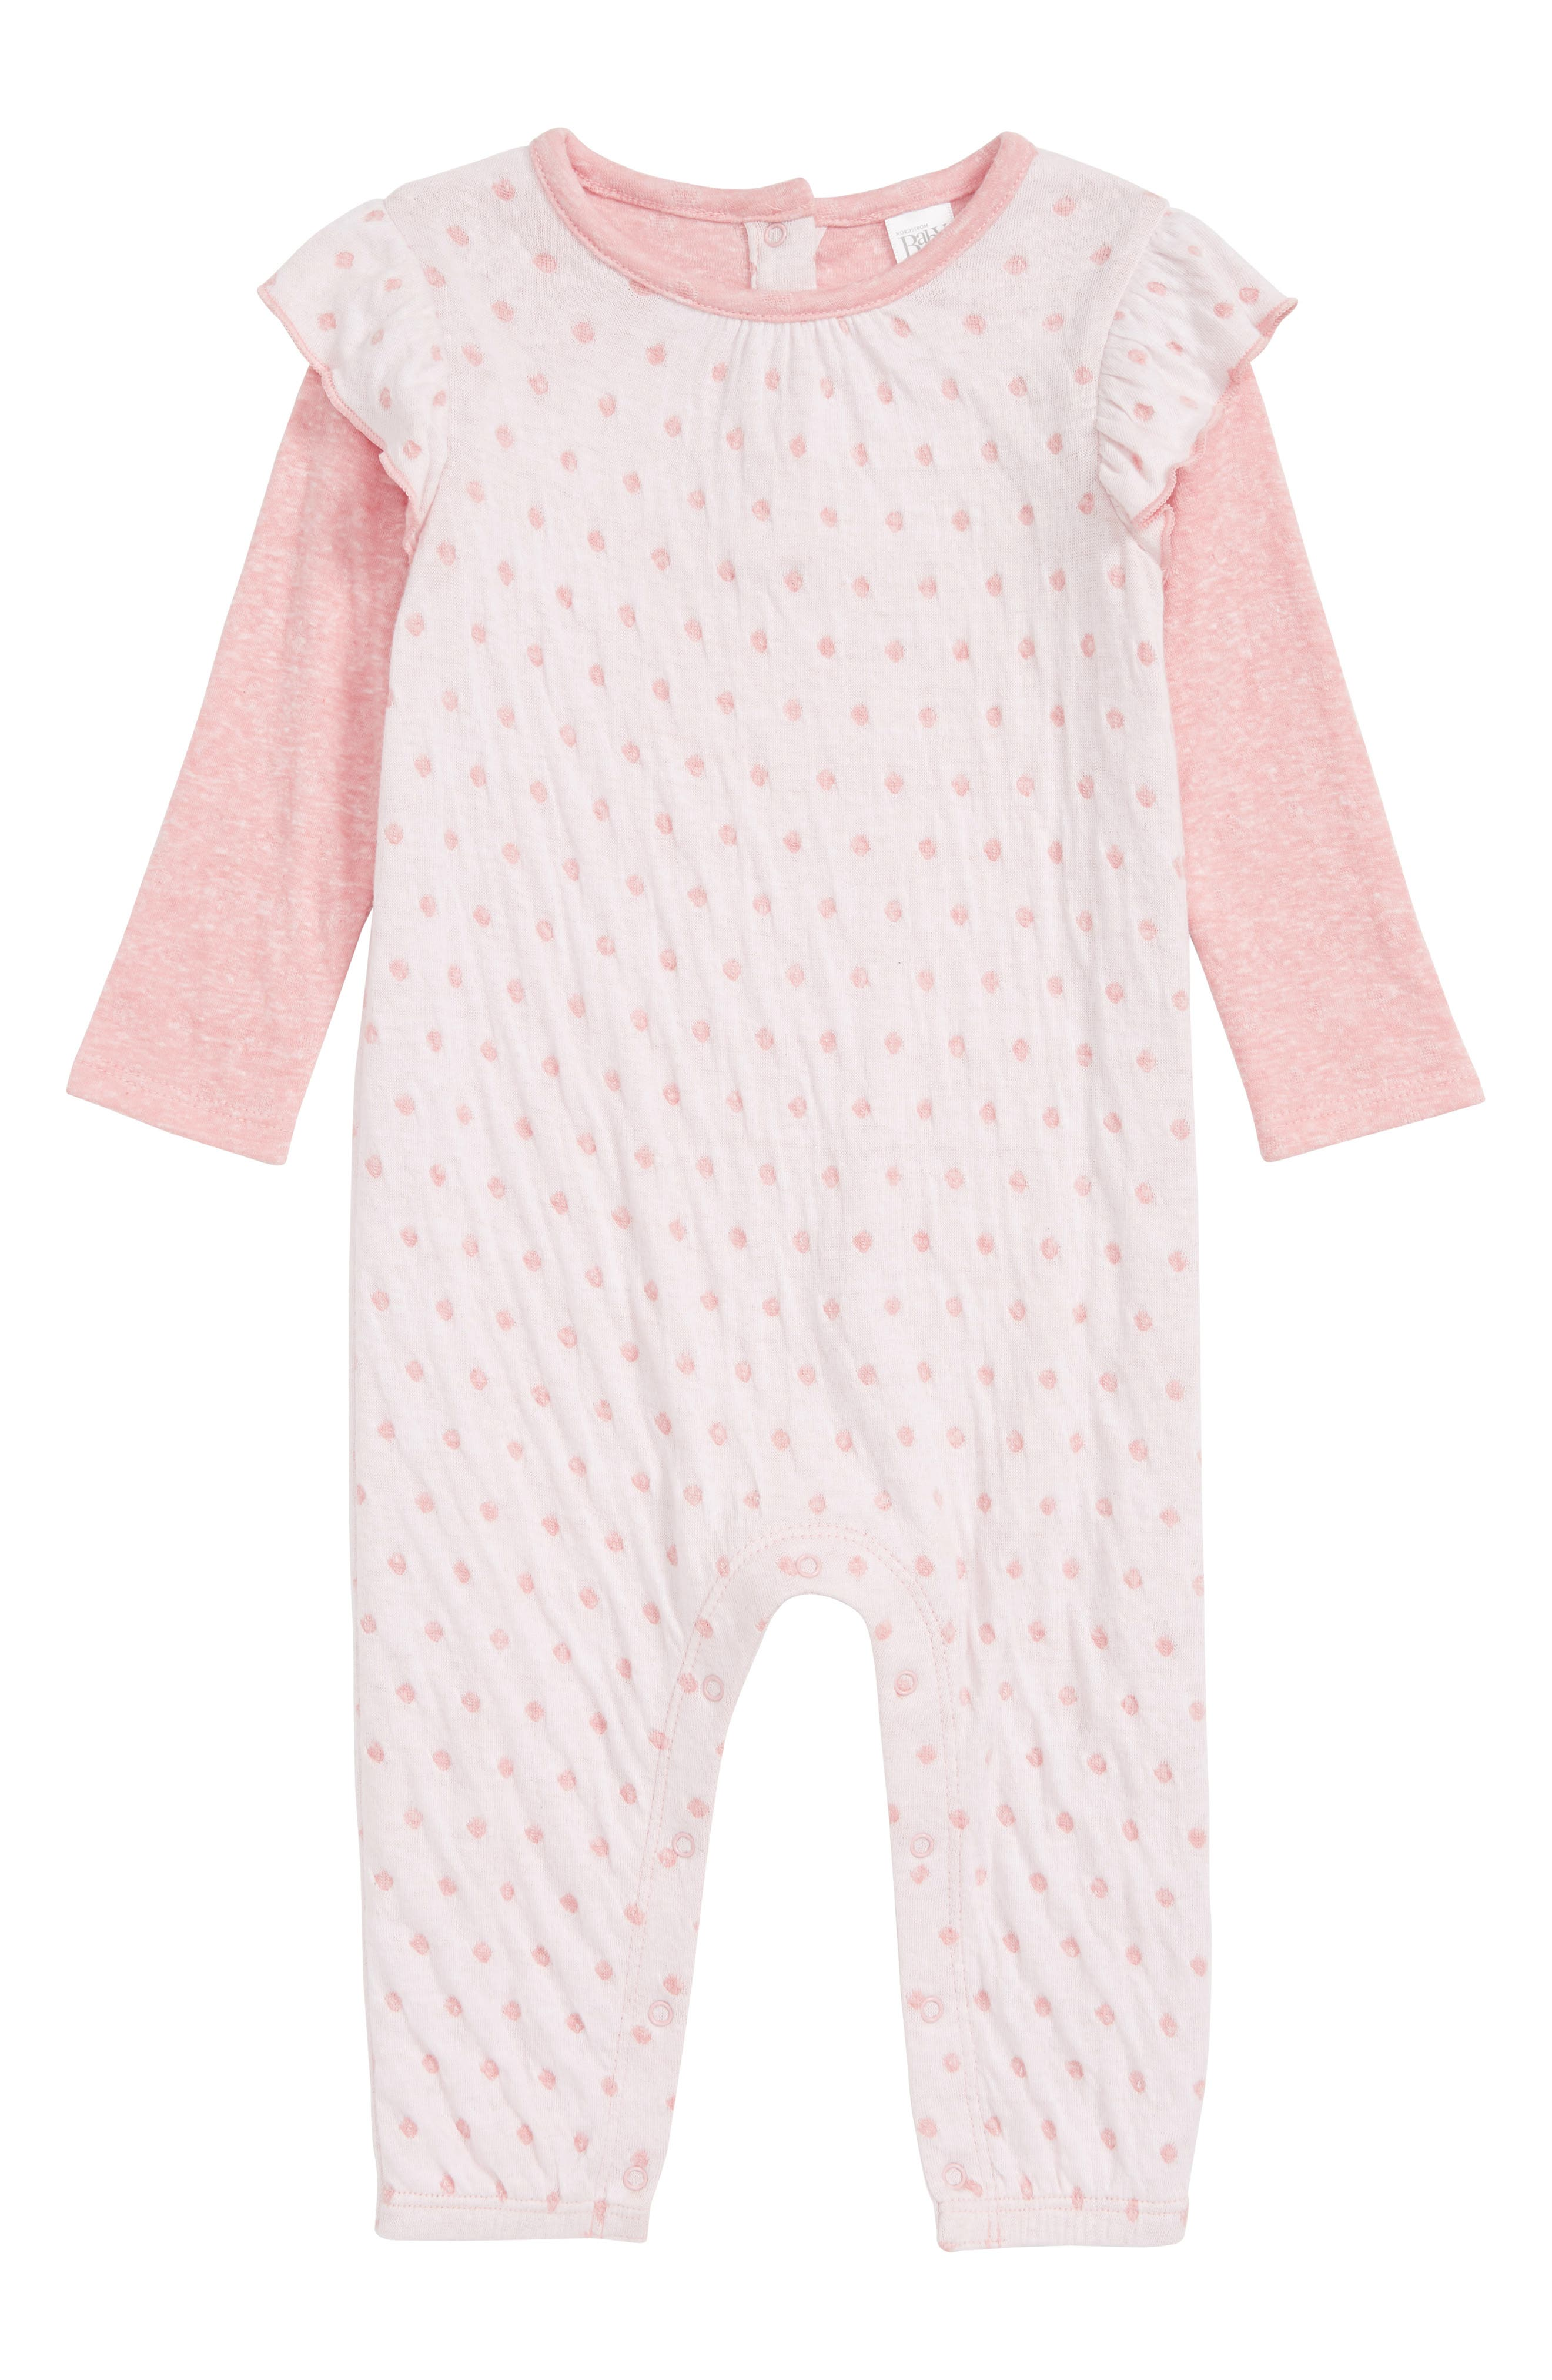 NORDSTROM BABY 2-Fer Coveralls, Main, color, 680